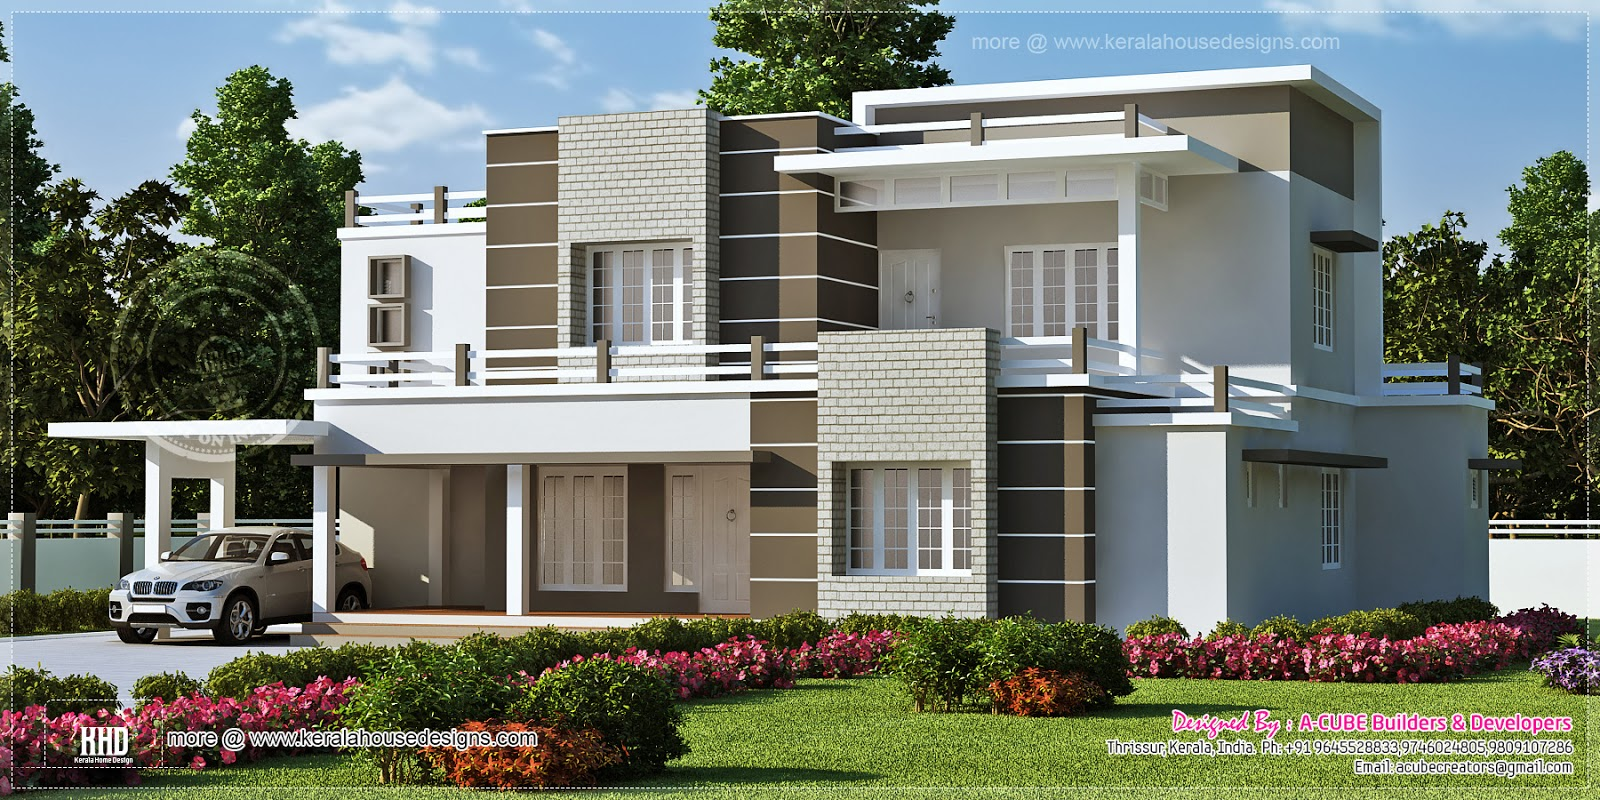 Beautiful sober color contemporary home design kerala for Kerala contemporary home designs